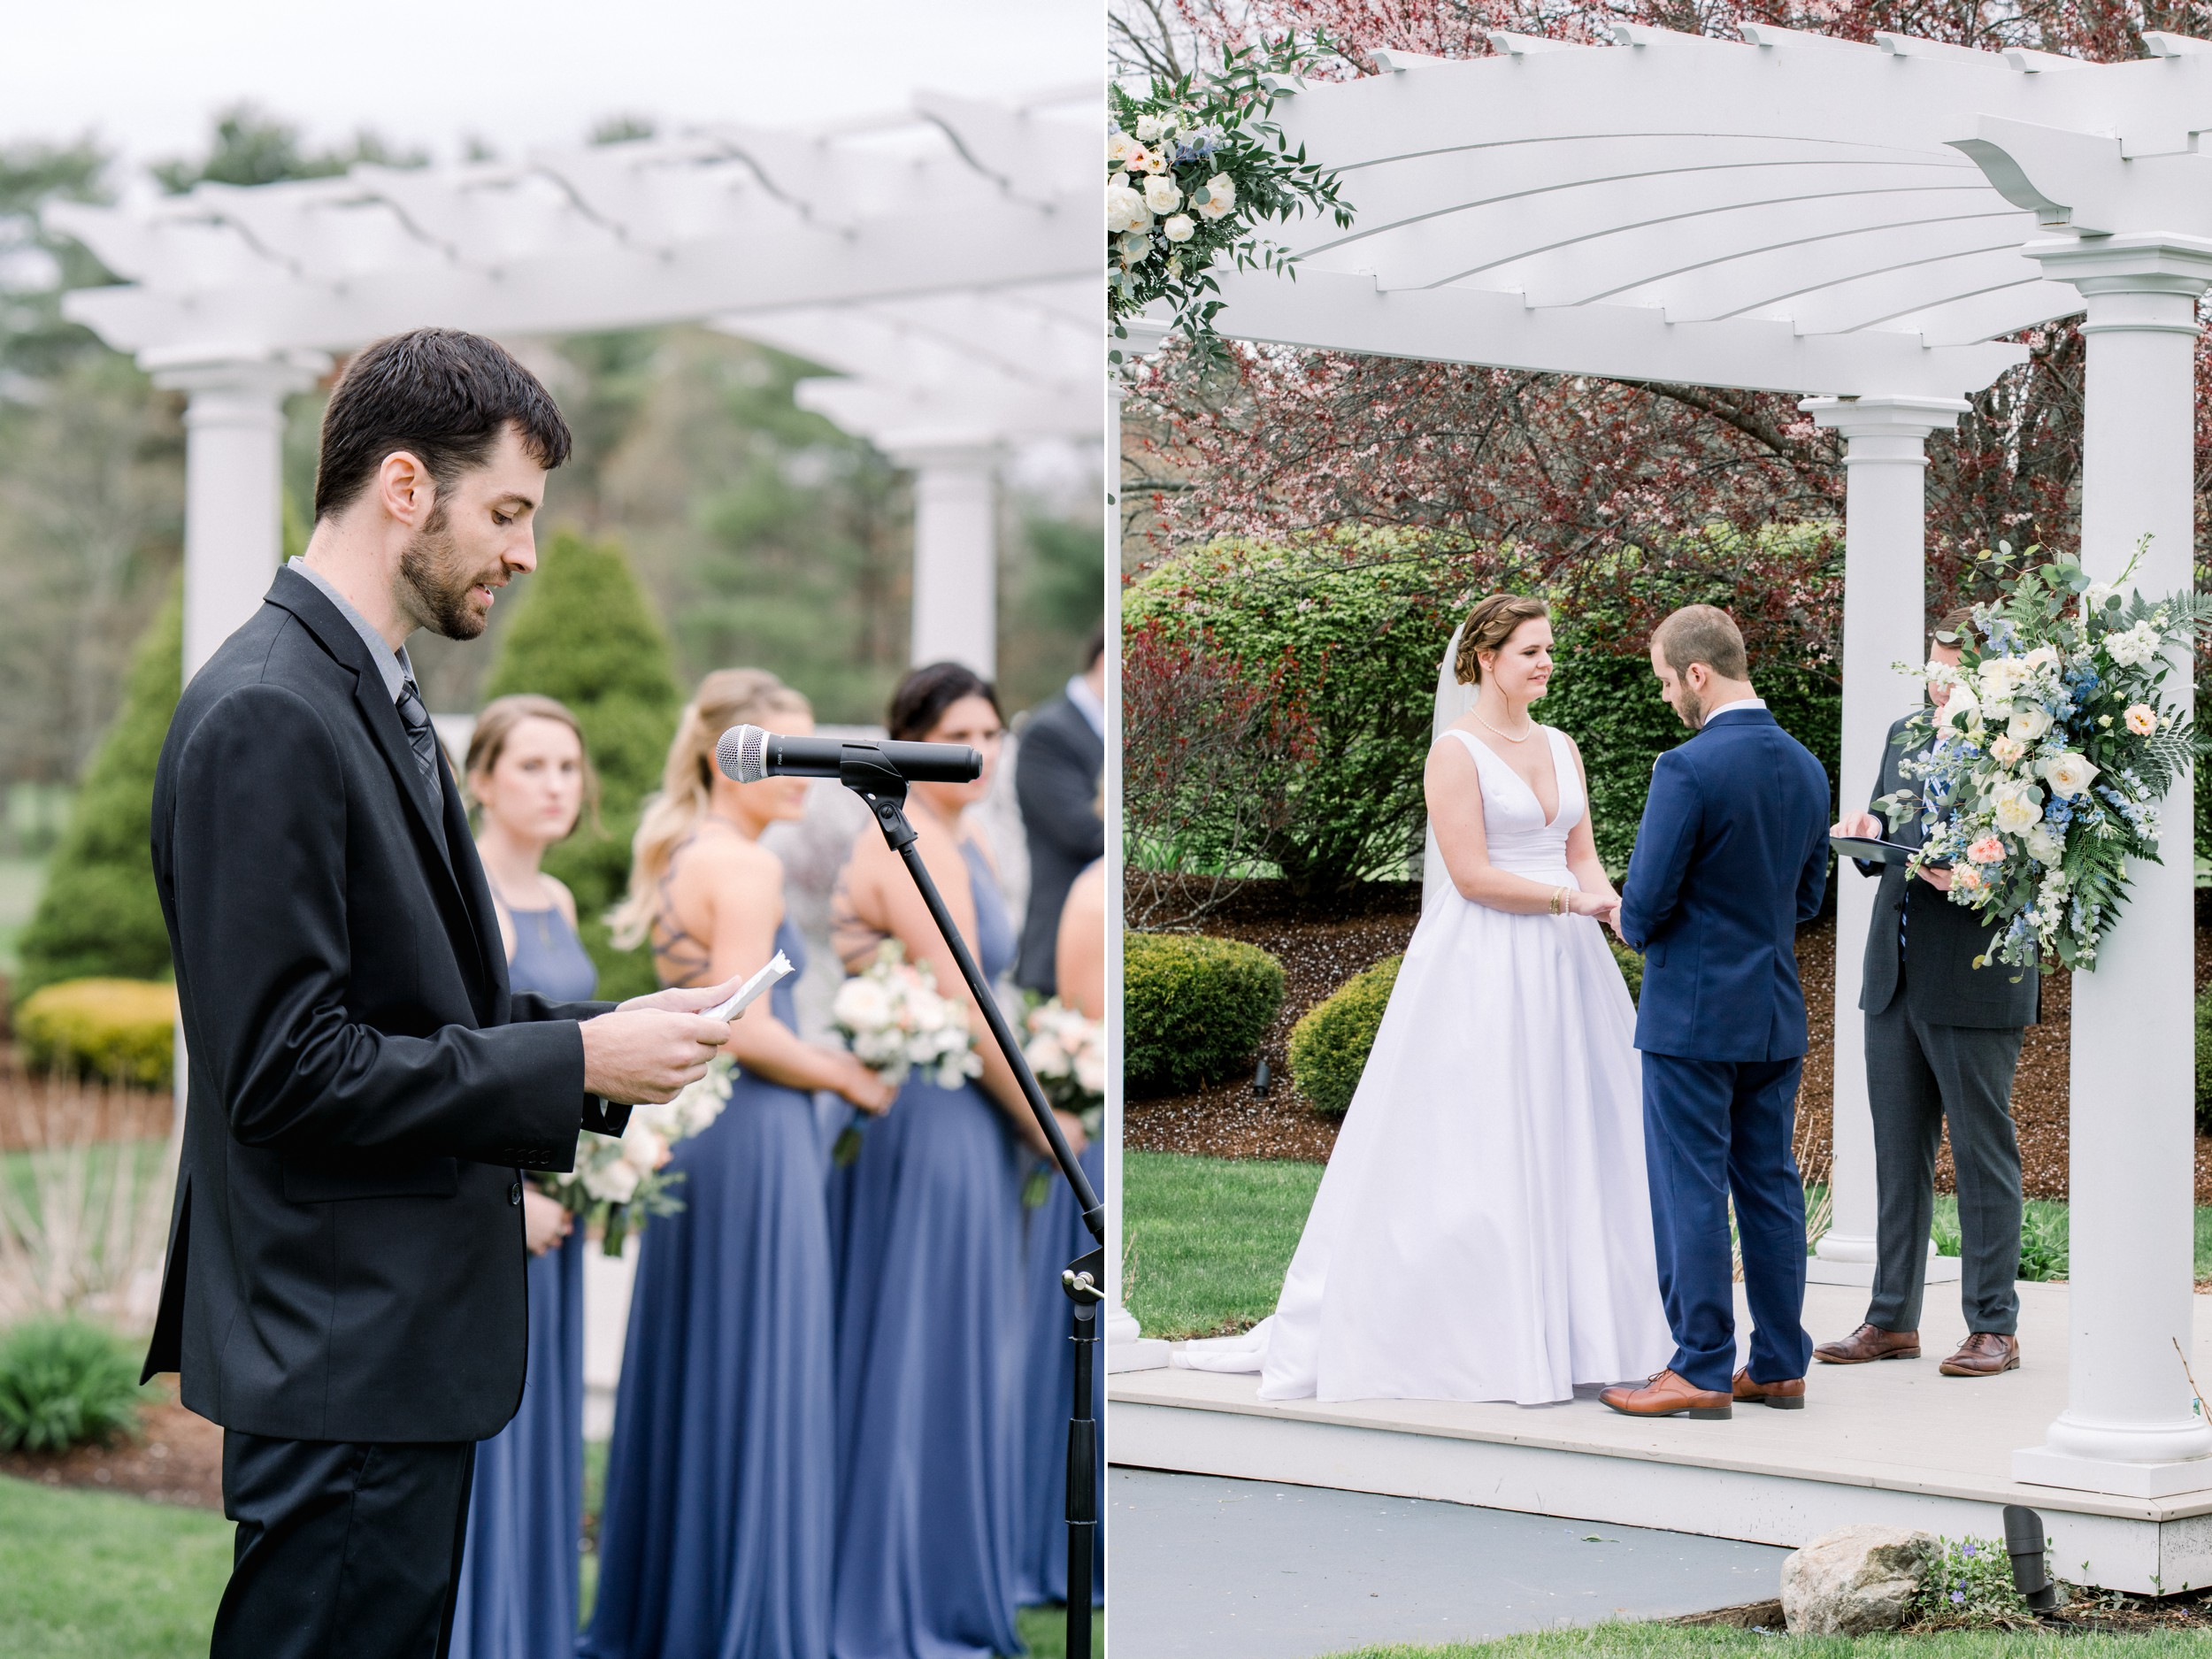 The Villa at Ridder Country Club Outdoor Wedding Ceremony in Spring bride and groom say their vows